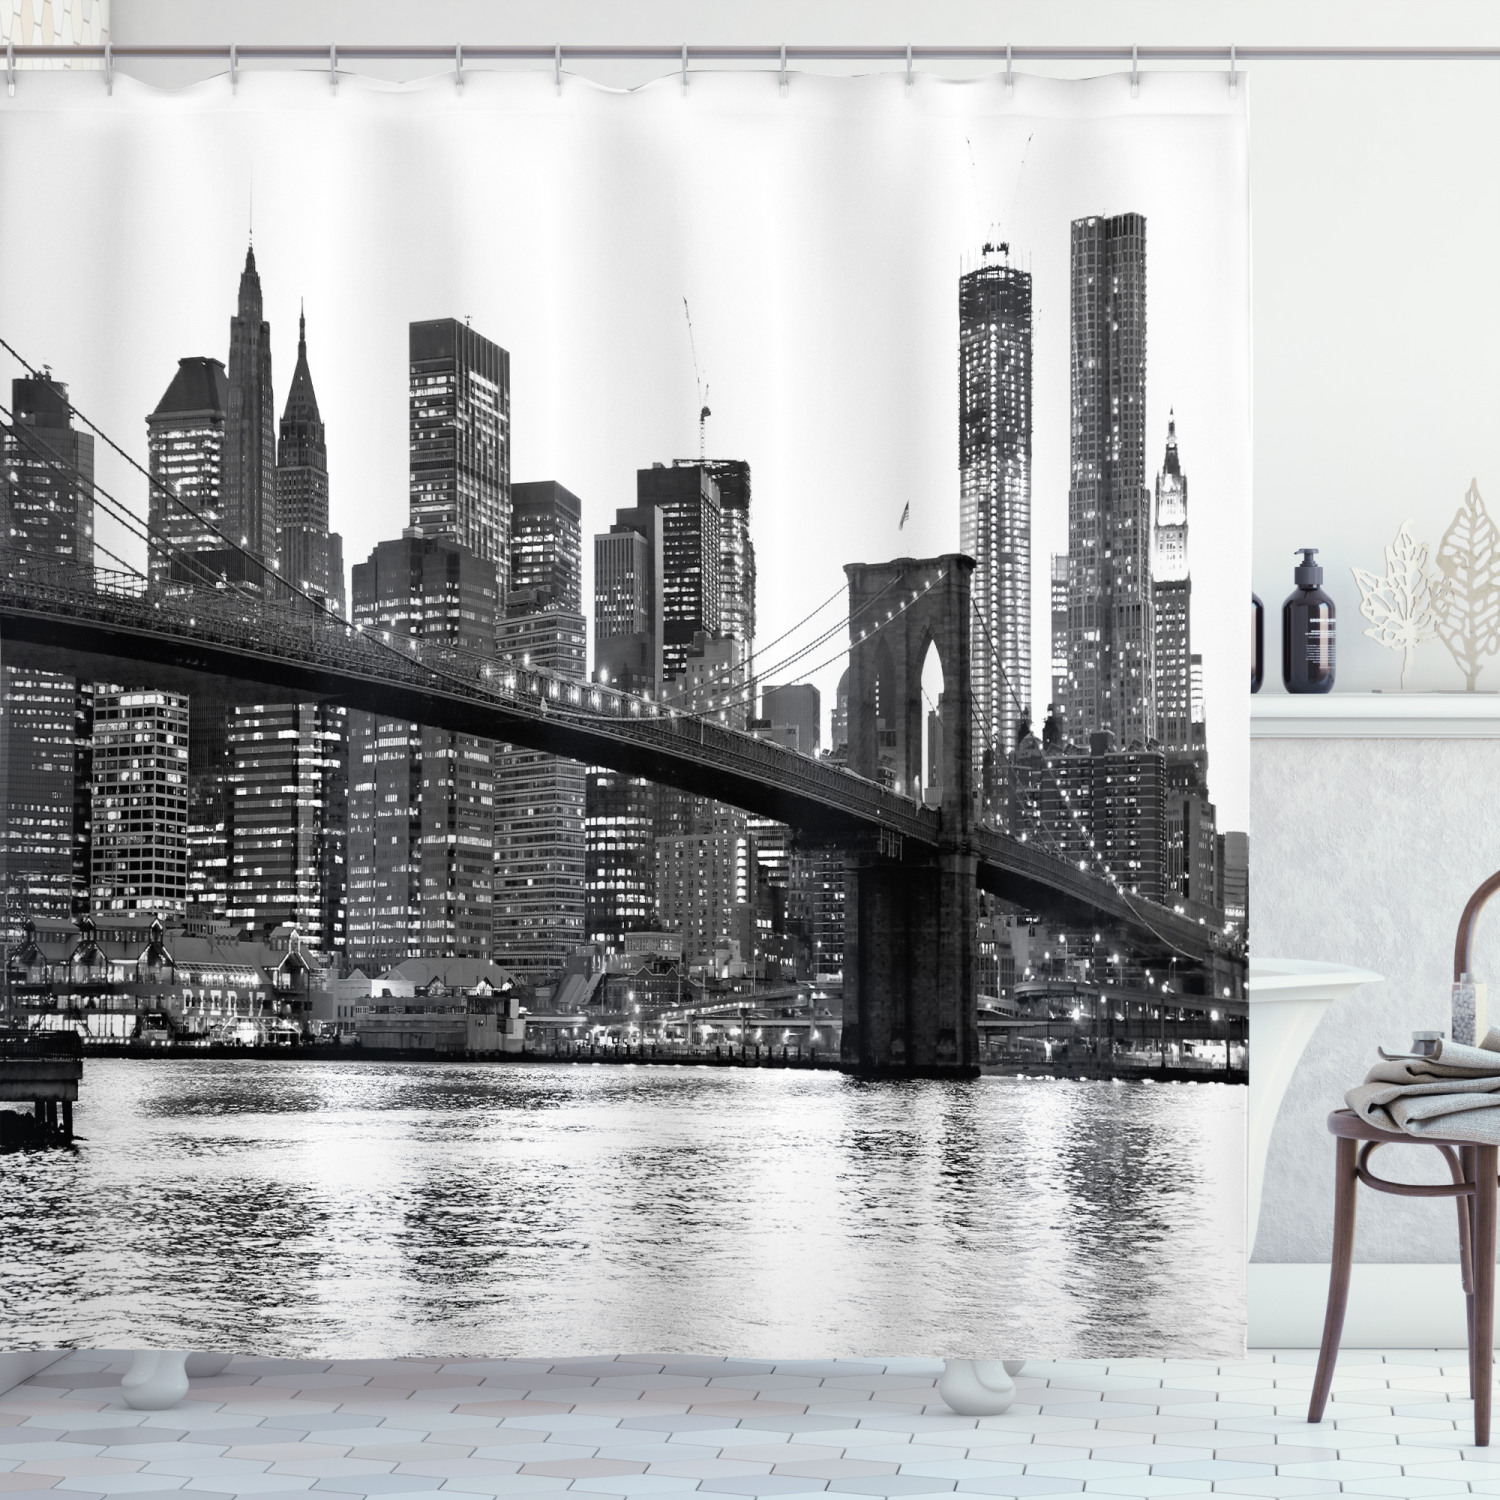 modern shower curtain brooklyn bridge sunset with manhattan american new york city famous town image fabric bathroom set with hooks black and